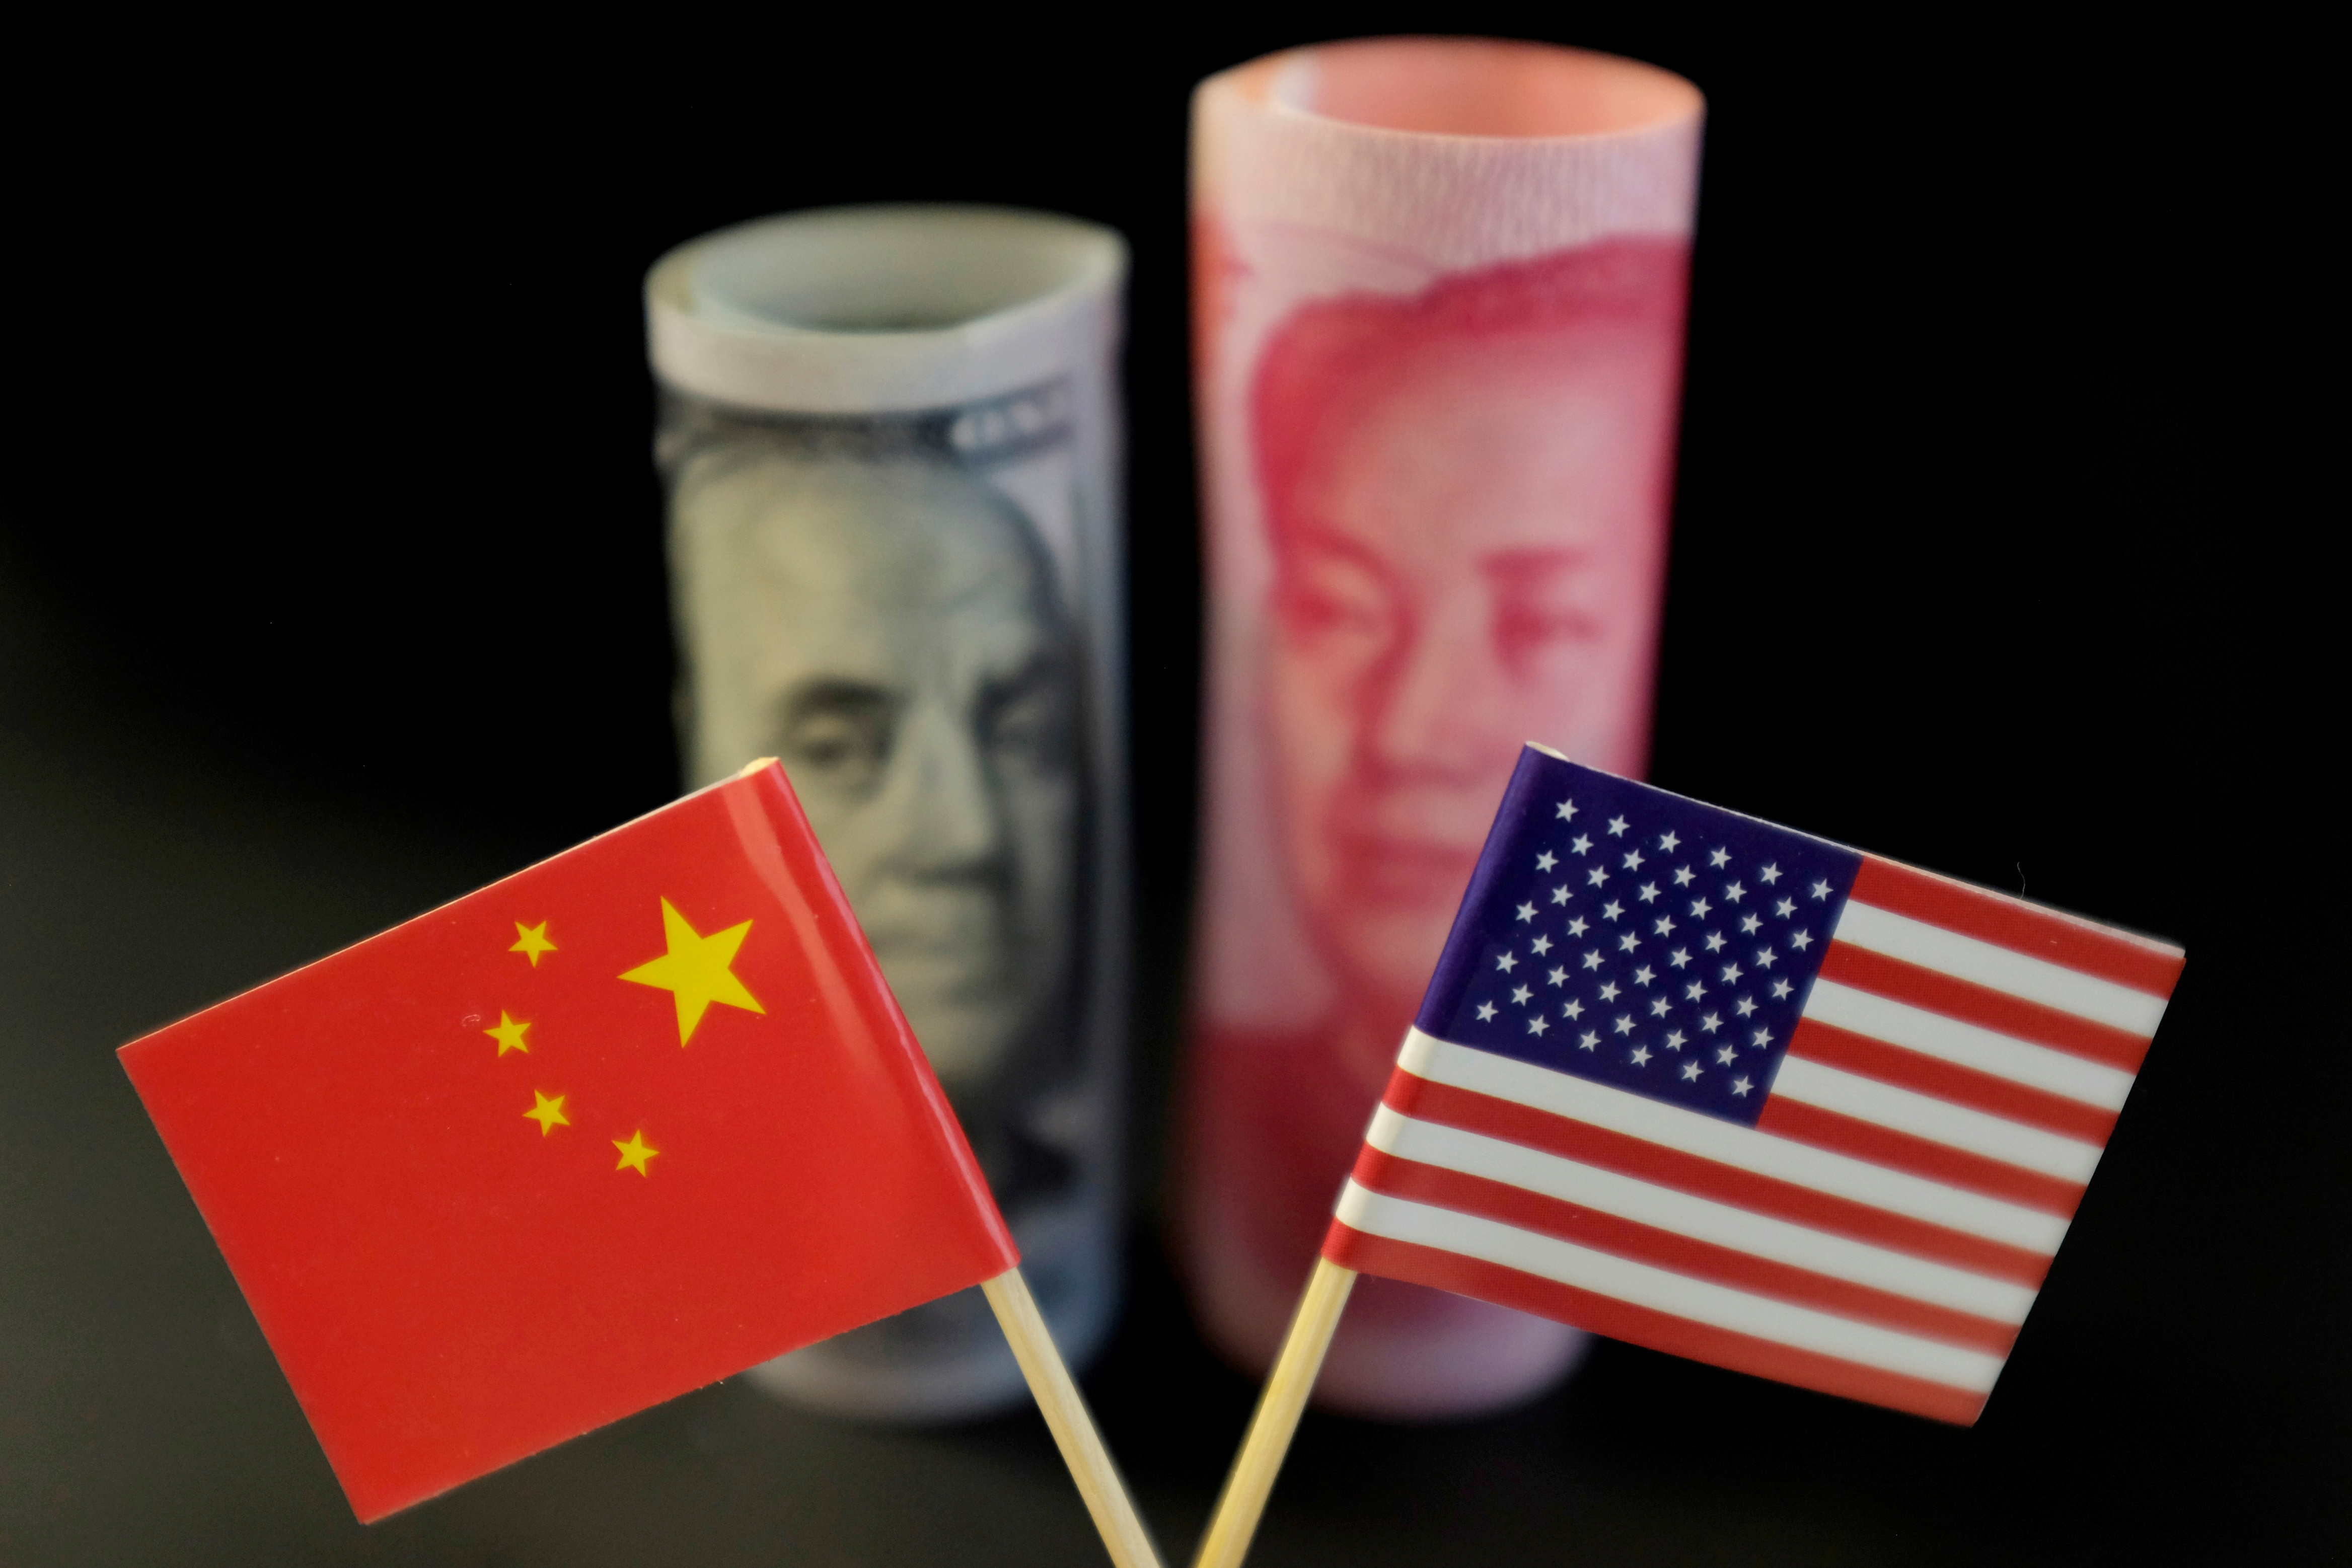 U.S. and Chinese flags are seen in front of a U.S. dollar banknote featuring American founding father Benjamin Franklin and a China's yuan banknote featuring late Chinese chairman Mao Zedong in this illustration picture taken May 20, 2019. REUTERS/Jason Lee/Illustration/File Photo